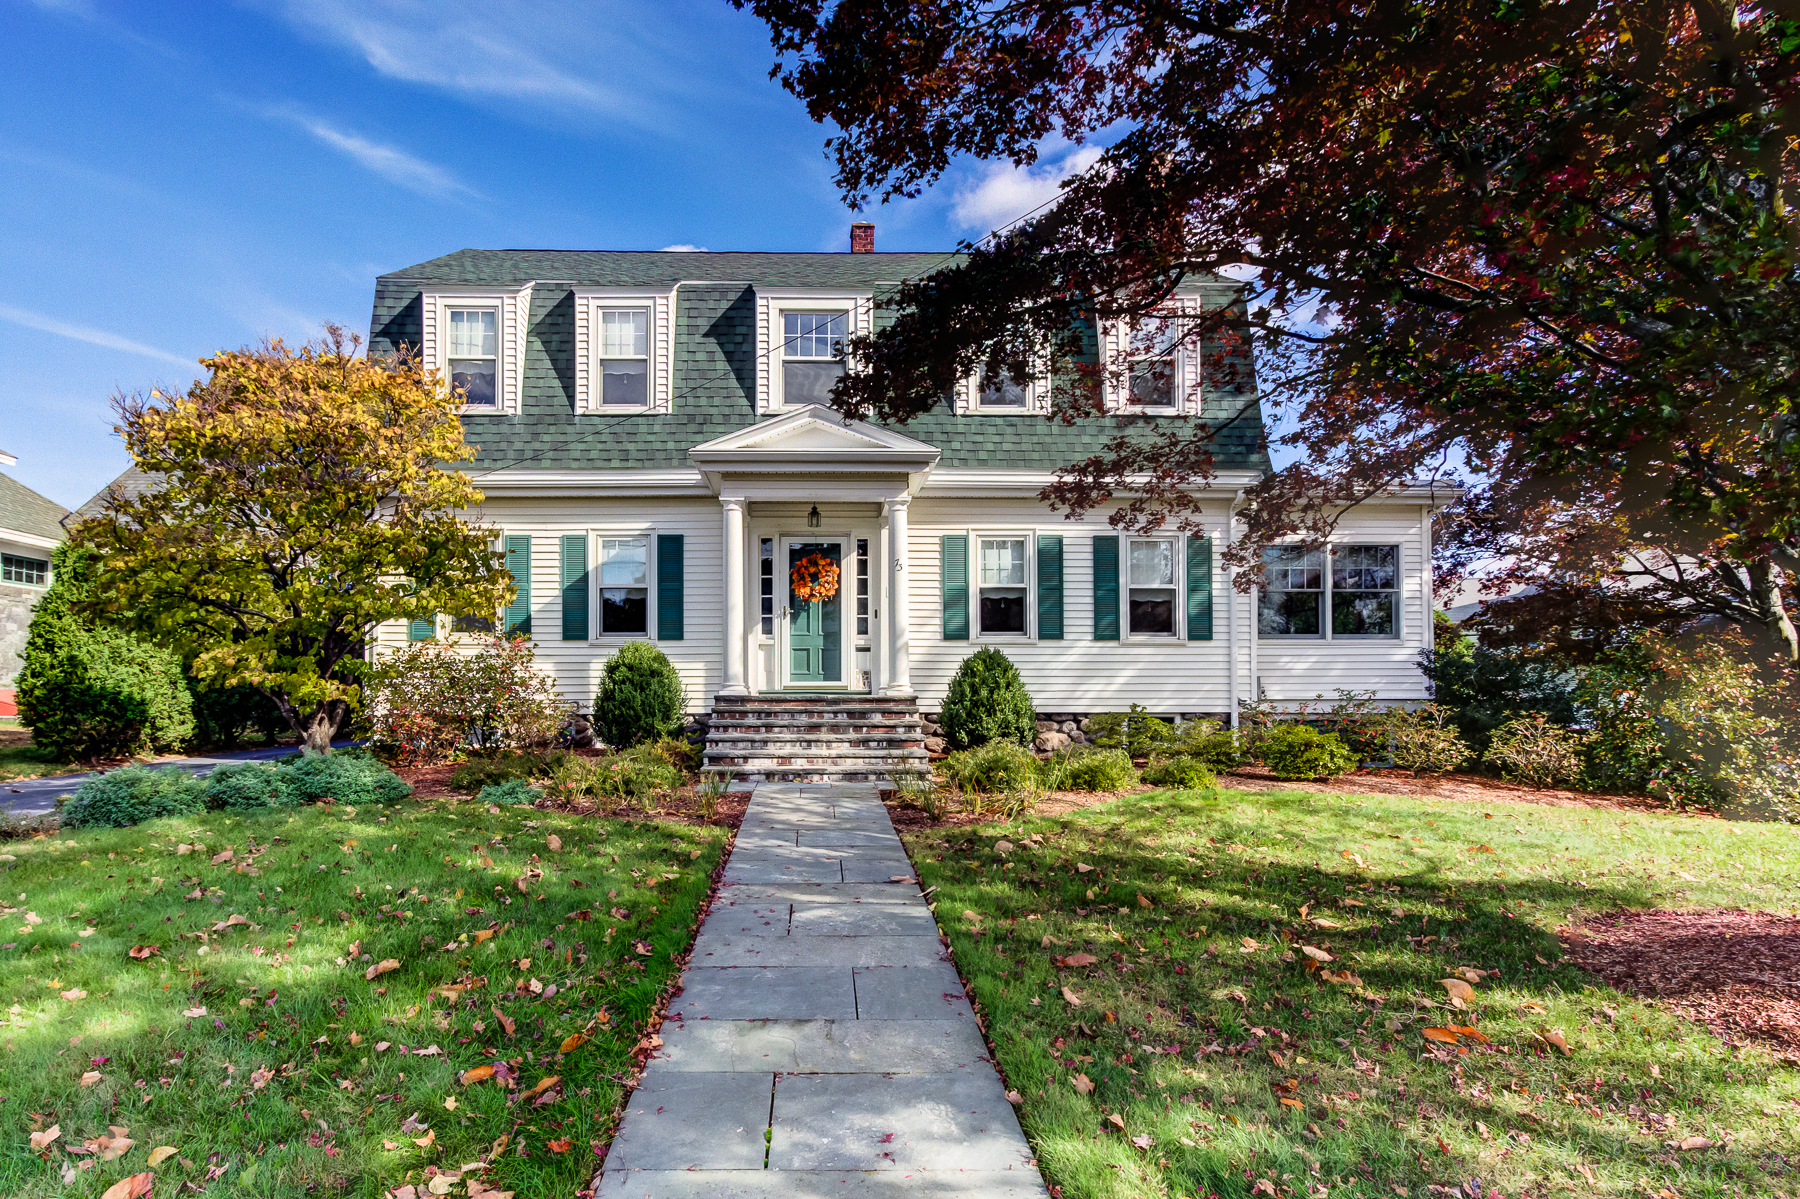 واحد منزل الأسرة للـ Sale في Charming Gambrel Home 73 Congress Street Milford, Massachusetts 01757 United States